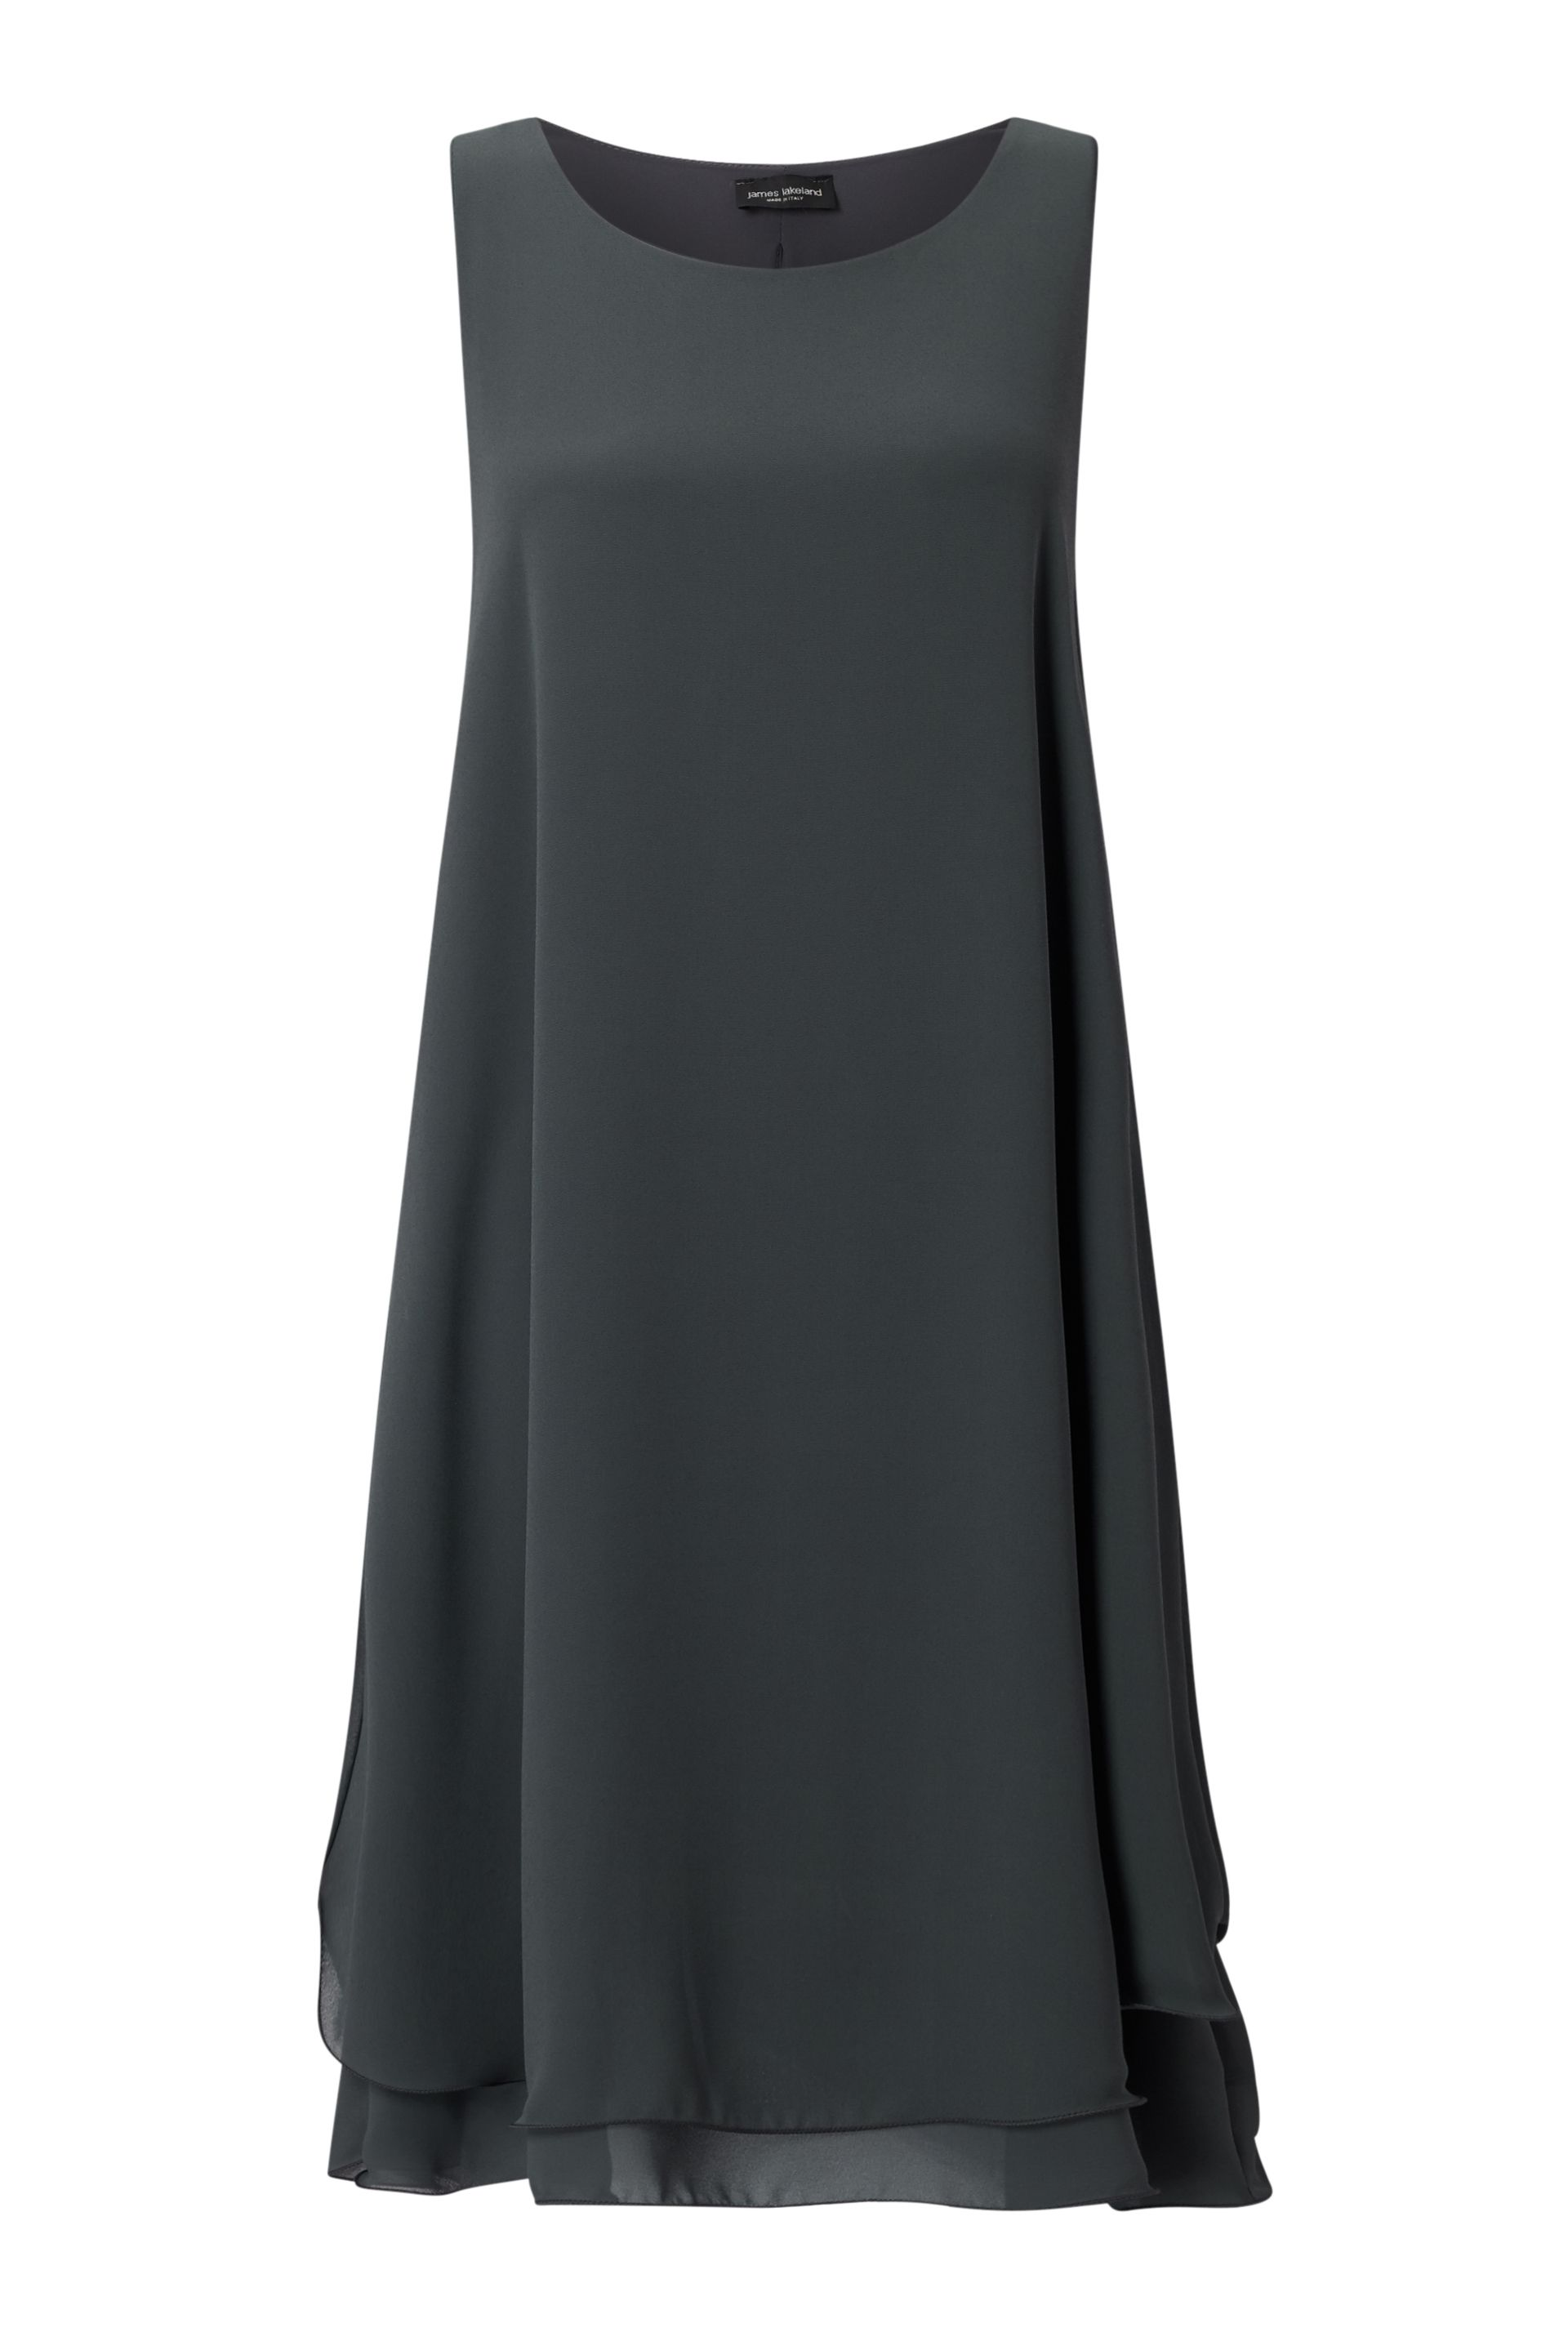 James Lakeland Sleeveless Wave Hem Dress, Charcoal